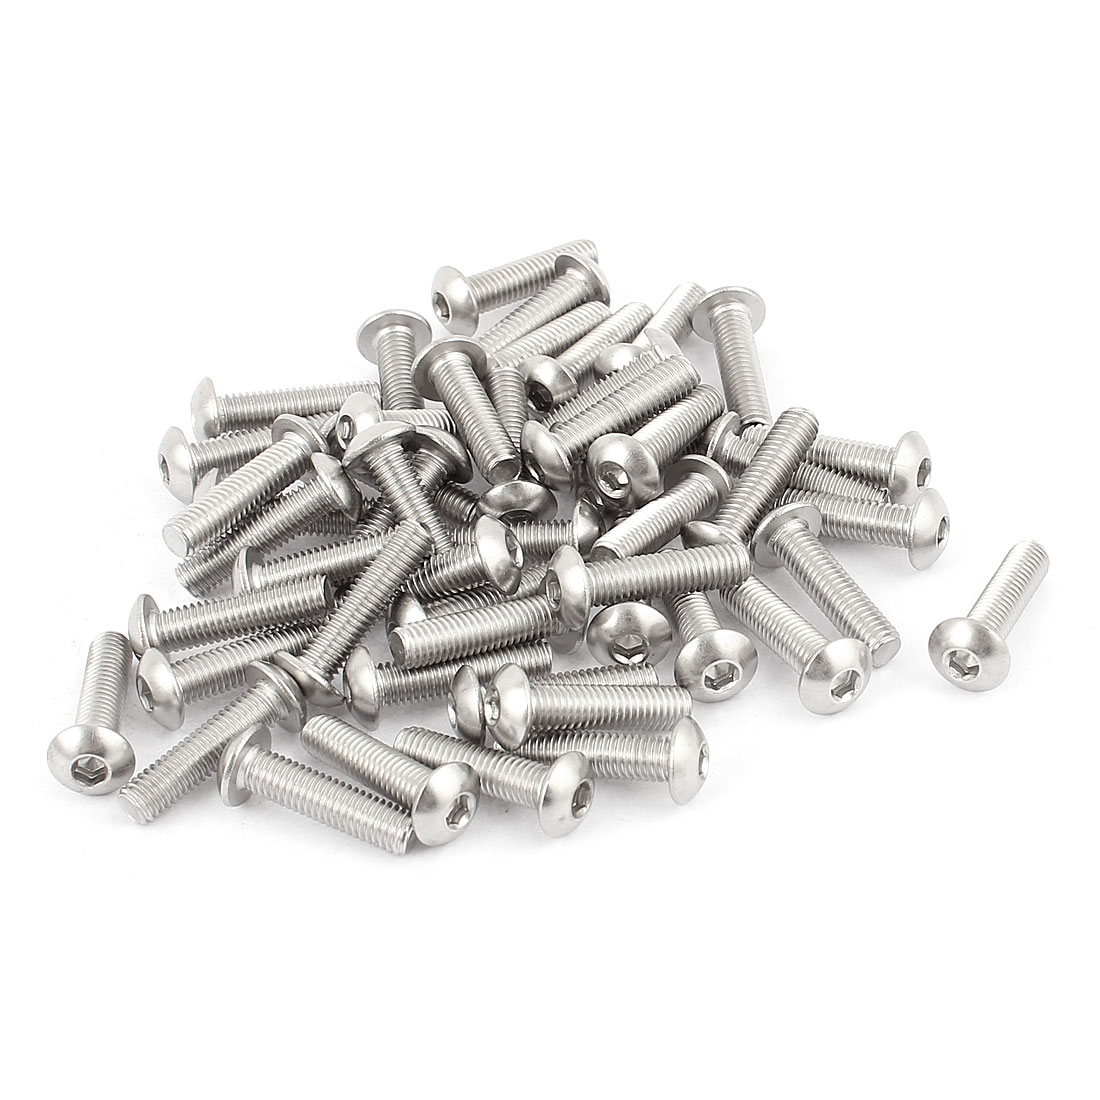 M5x20mm Stainless Steel Button Head Hex Socket Cap Screws Silver Tone 50Pcs